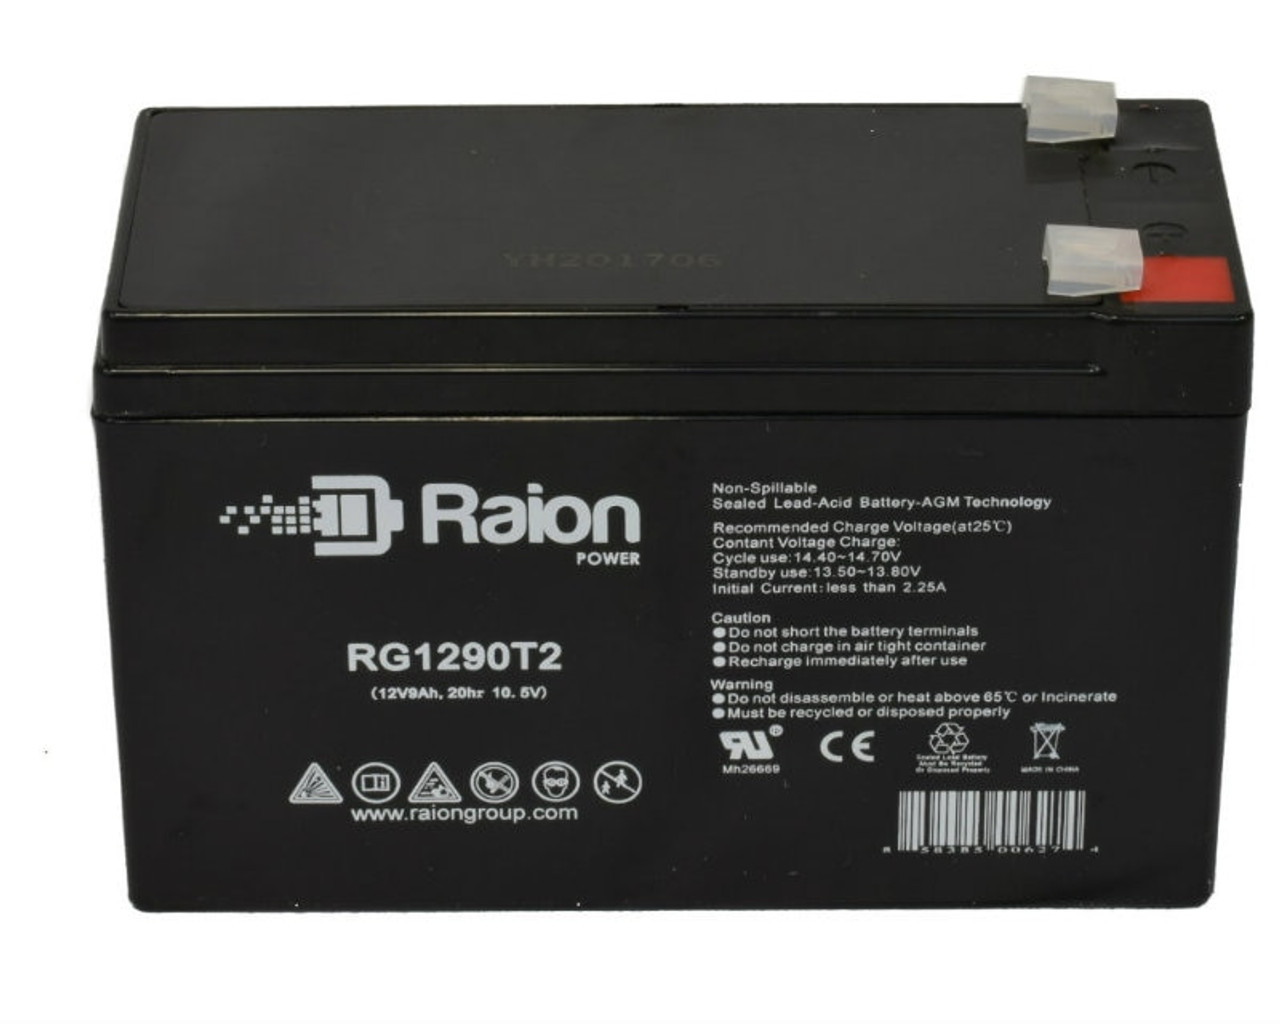 Raion Power 12V 9Ah SLA Battery With T2 Terminals For Potter Electric PFC-7500RG1290T2 Fire Alarm Control Panel